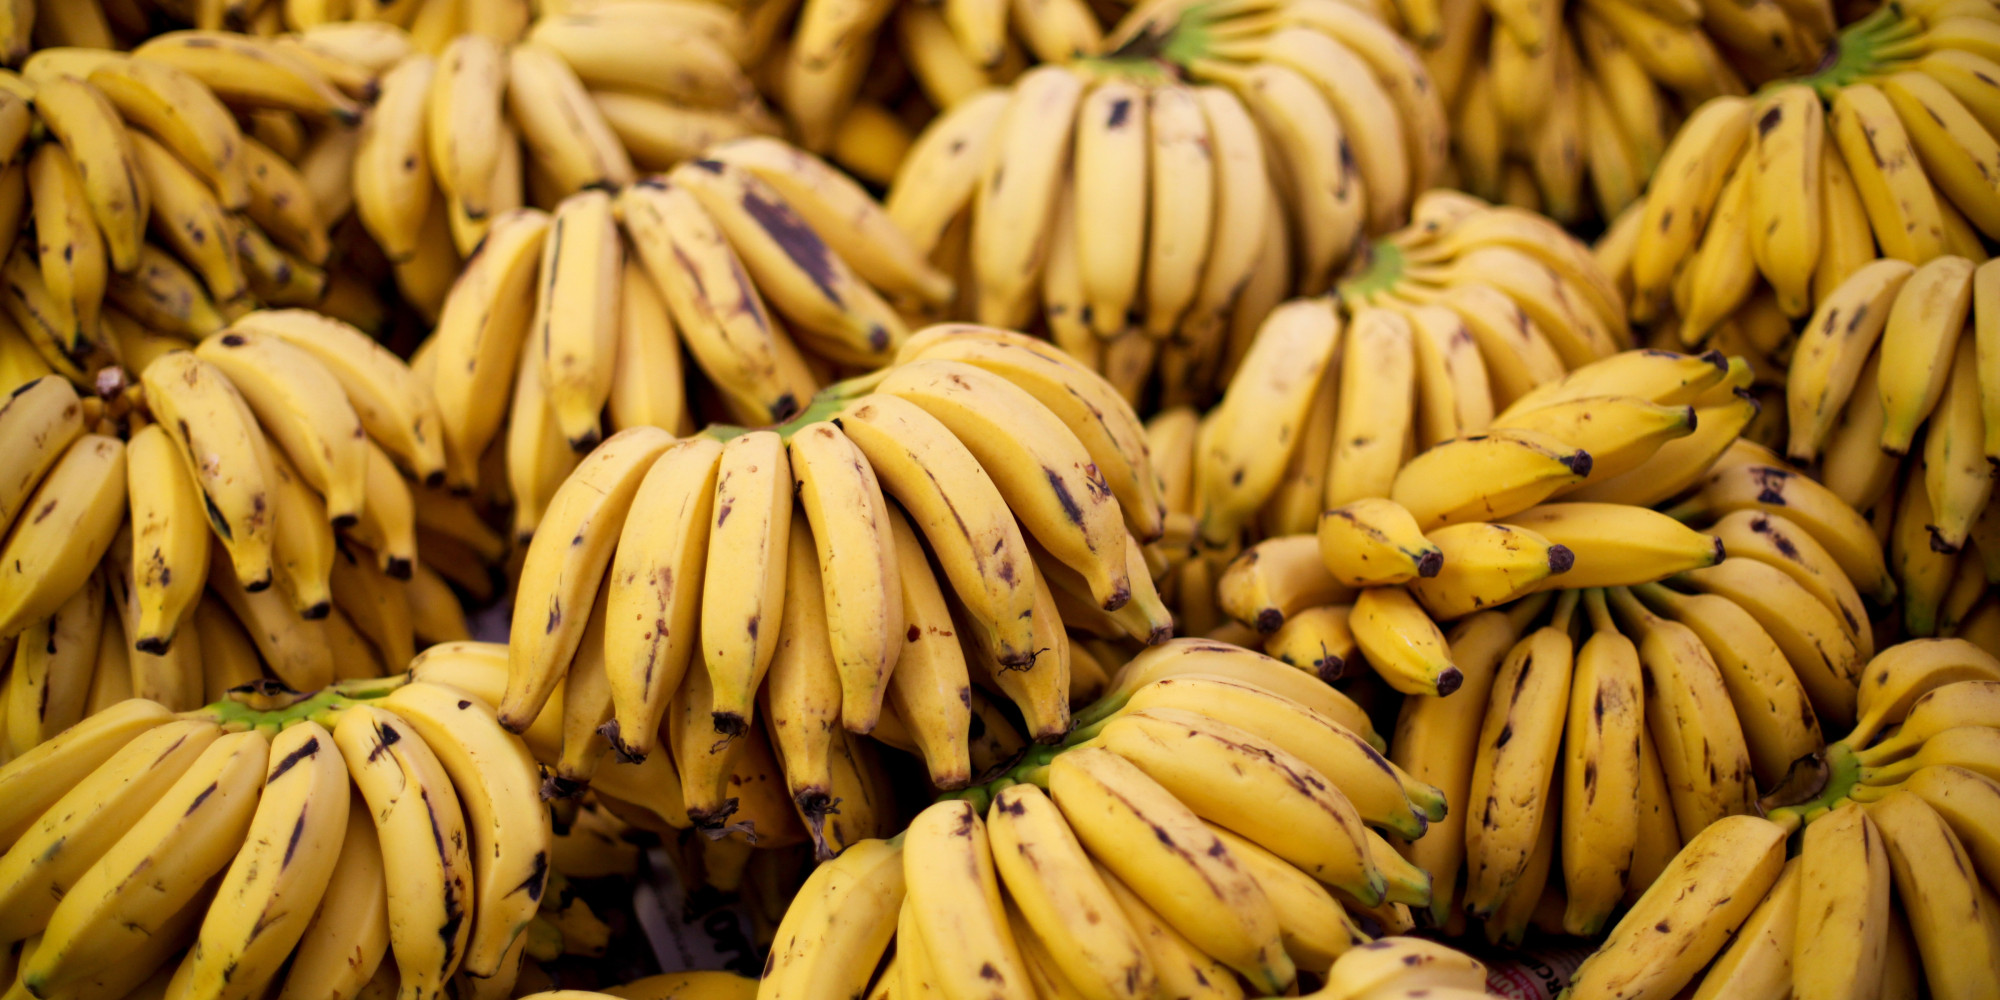 Bananas to fight menstruation